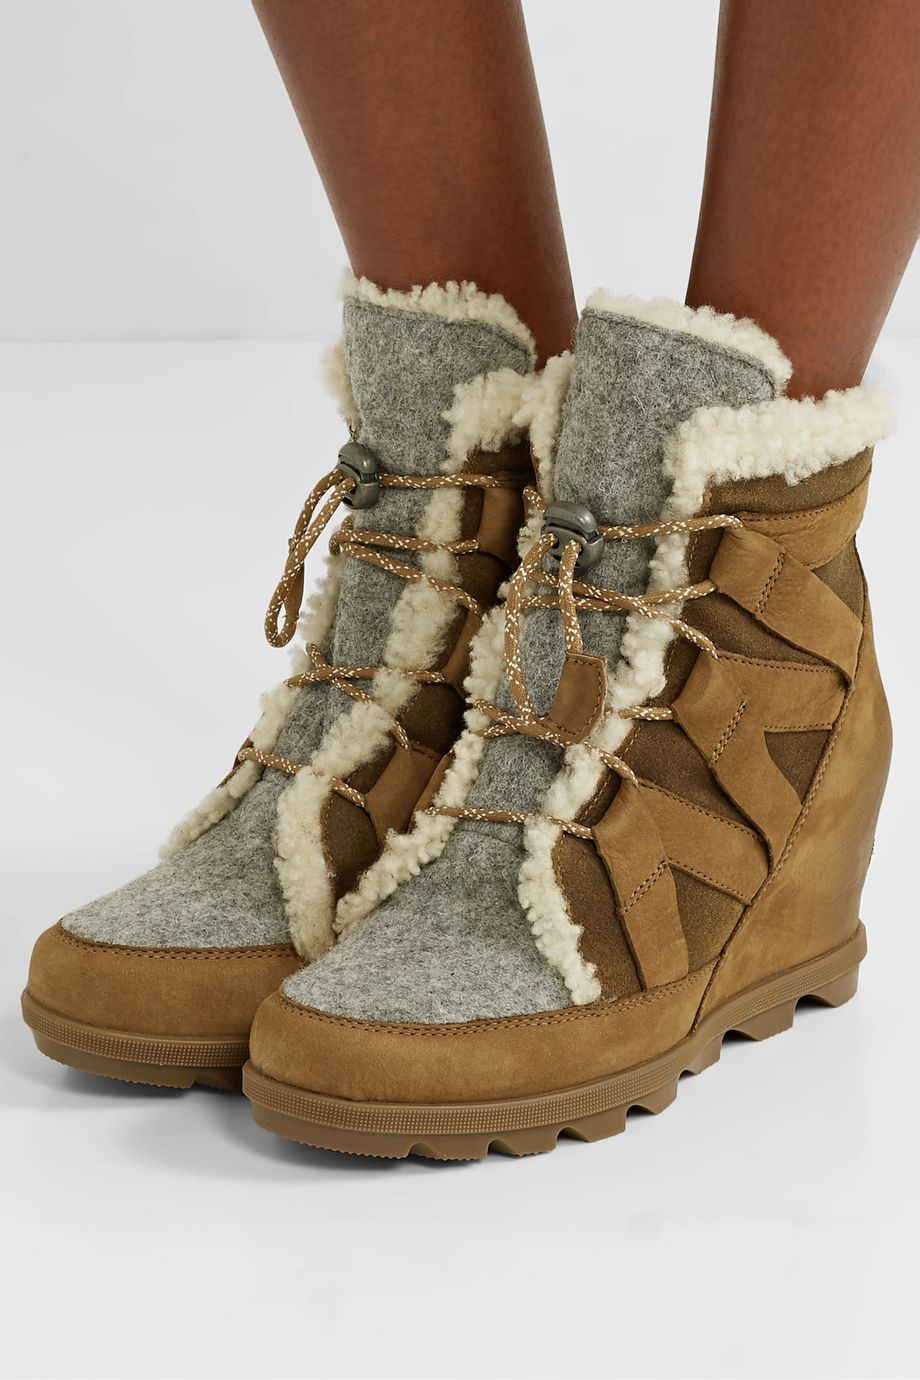 Sorel Joan of Arctic Wedge II shearling-trimmed waterproof nubuck, suede and felt ankle boots